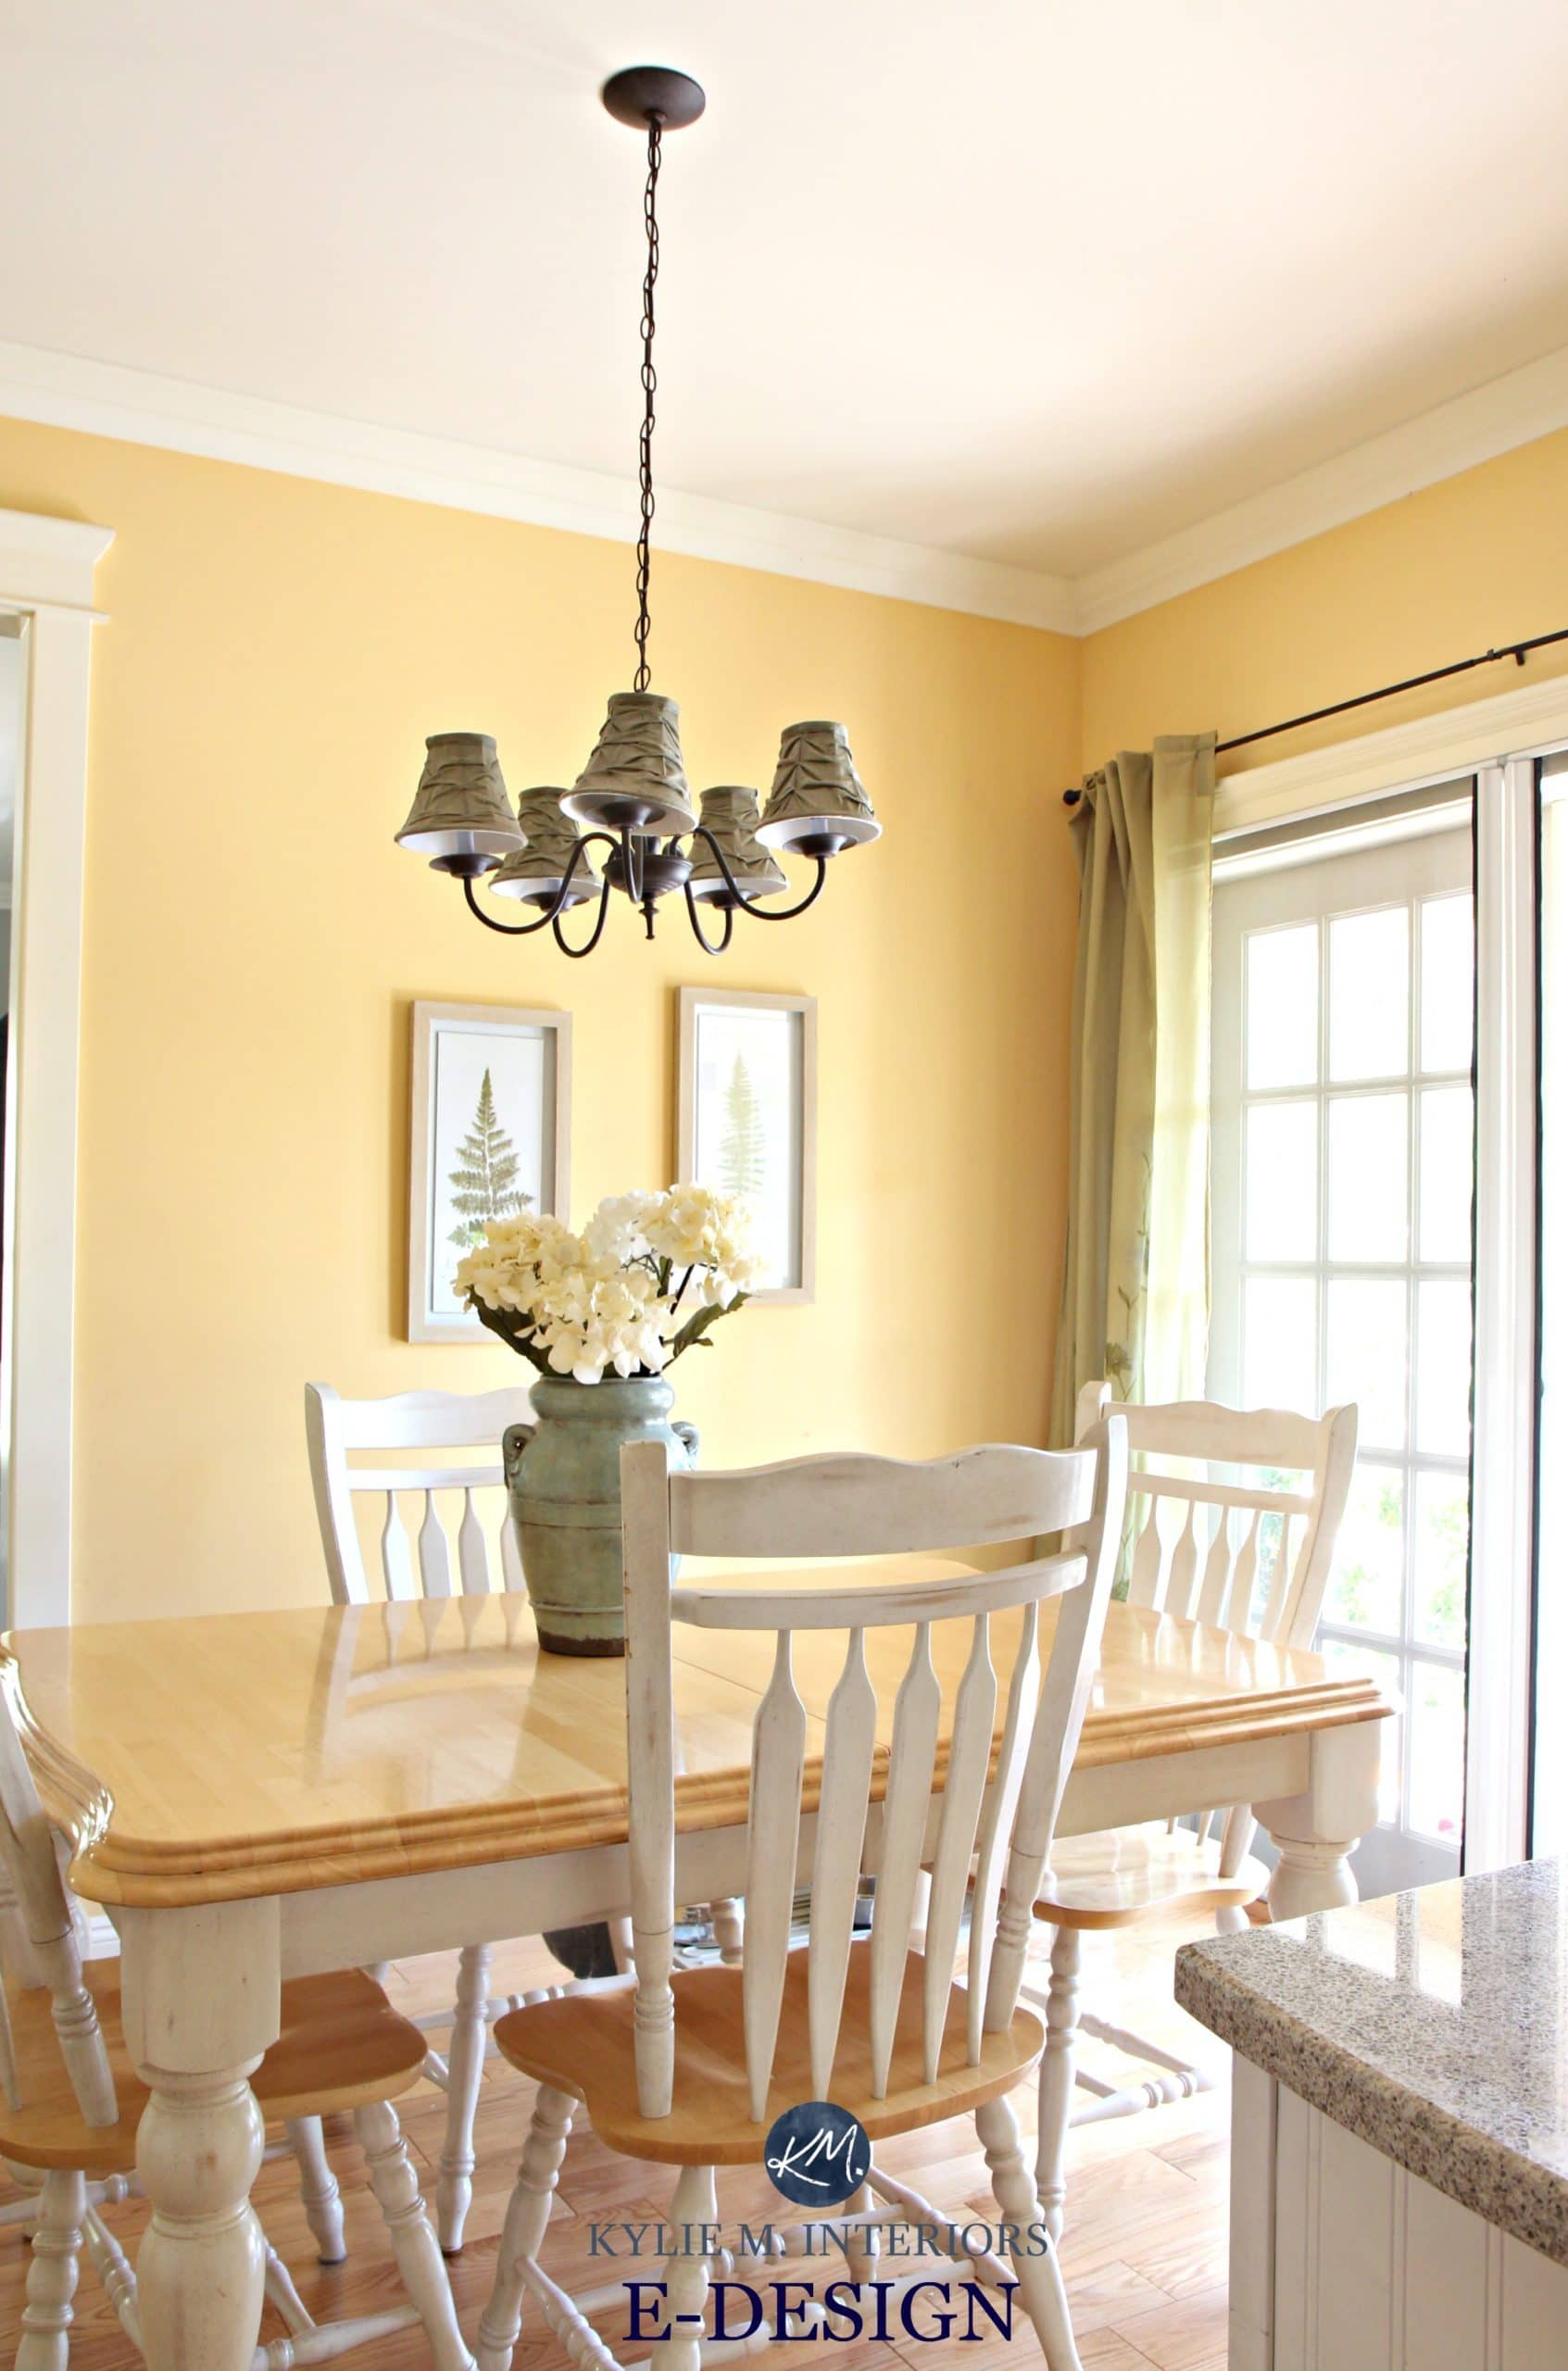 My Yellow Farmhouse Blog Benjamin Moore Suntan Yellow Eating Nook In Country Style